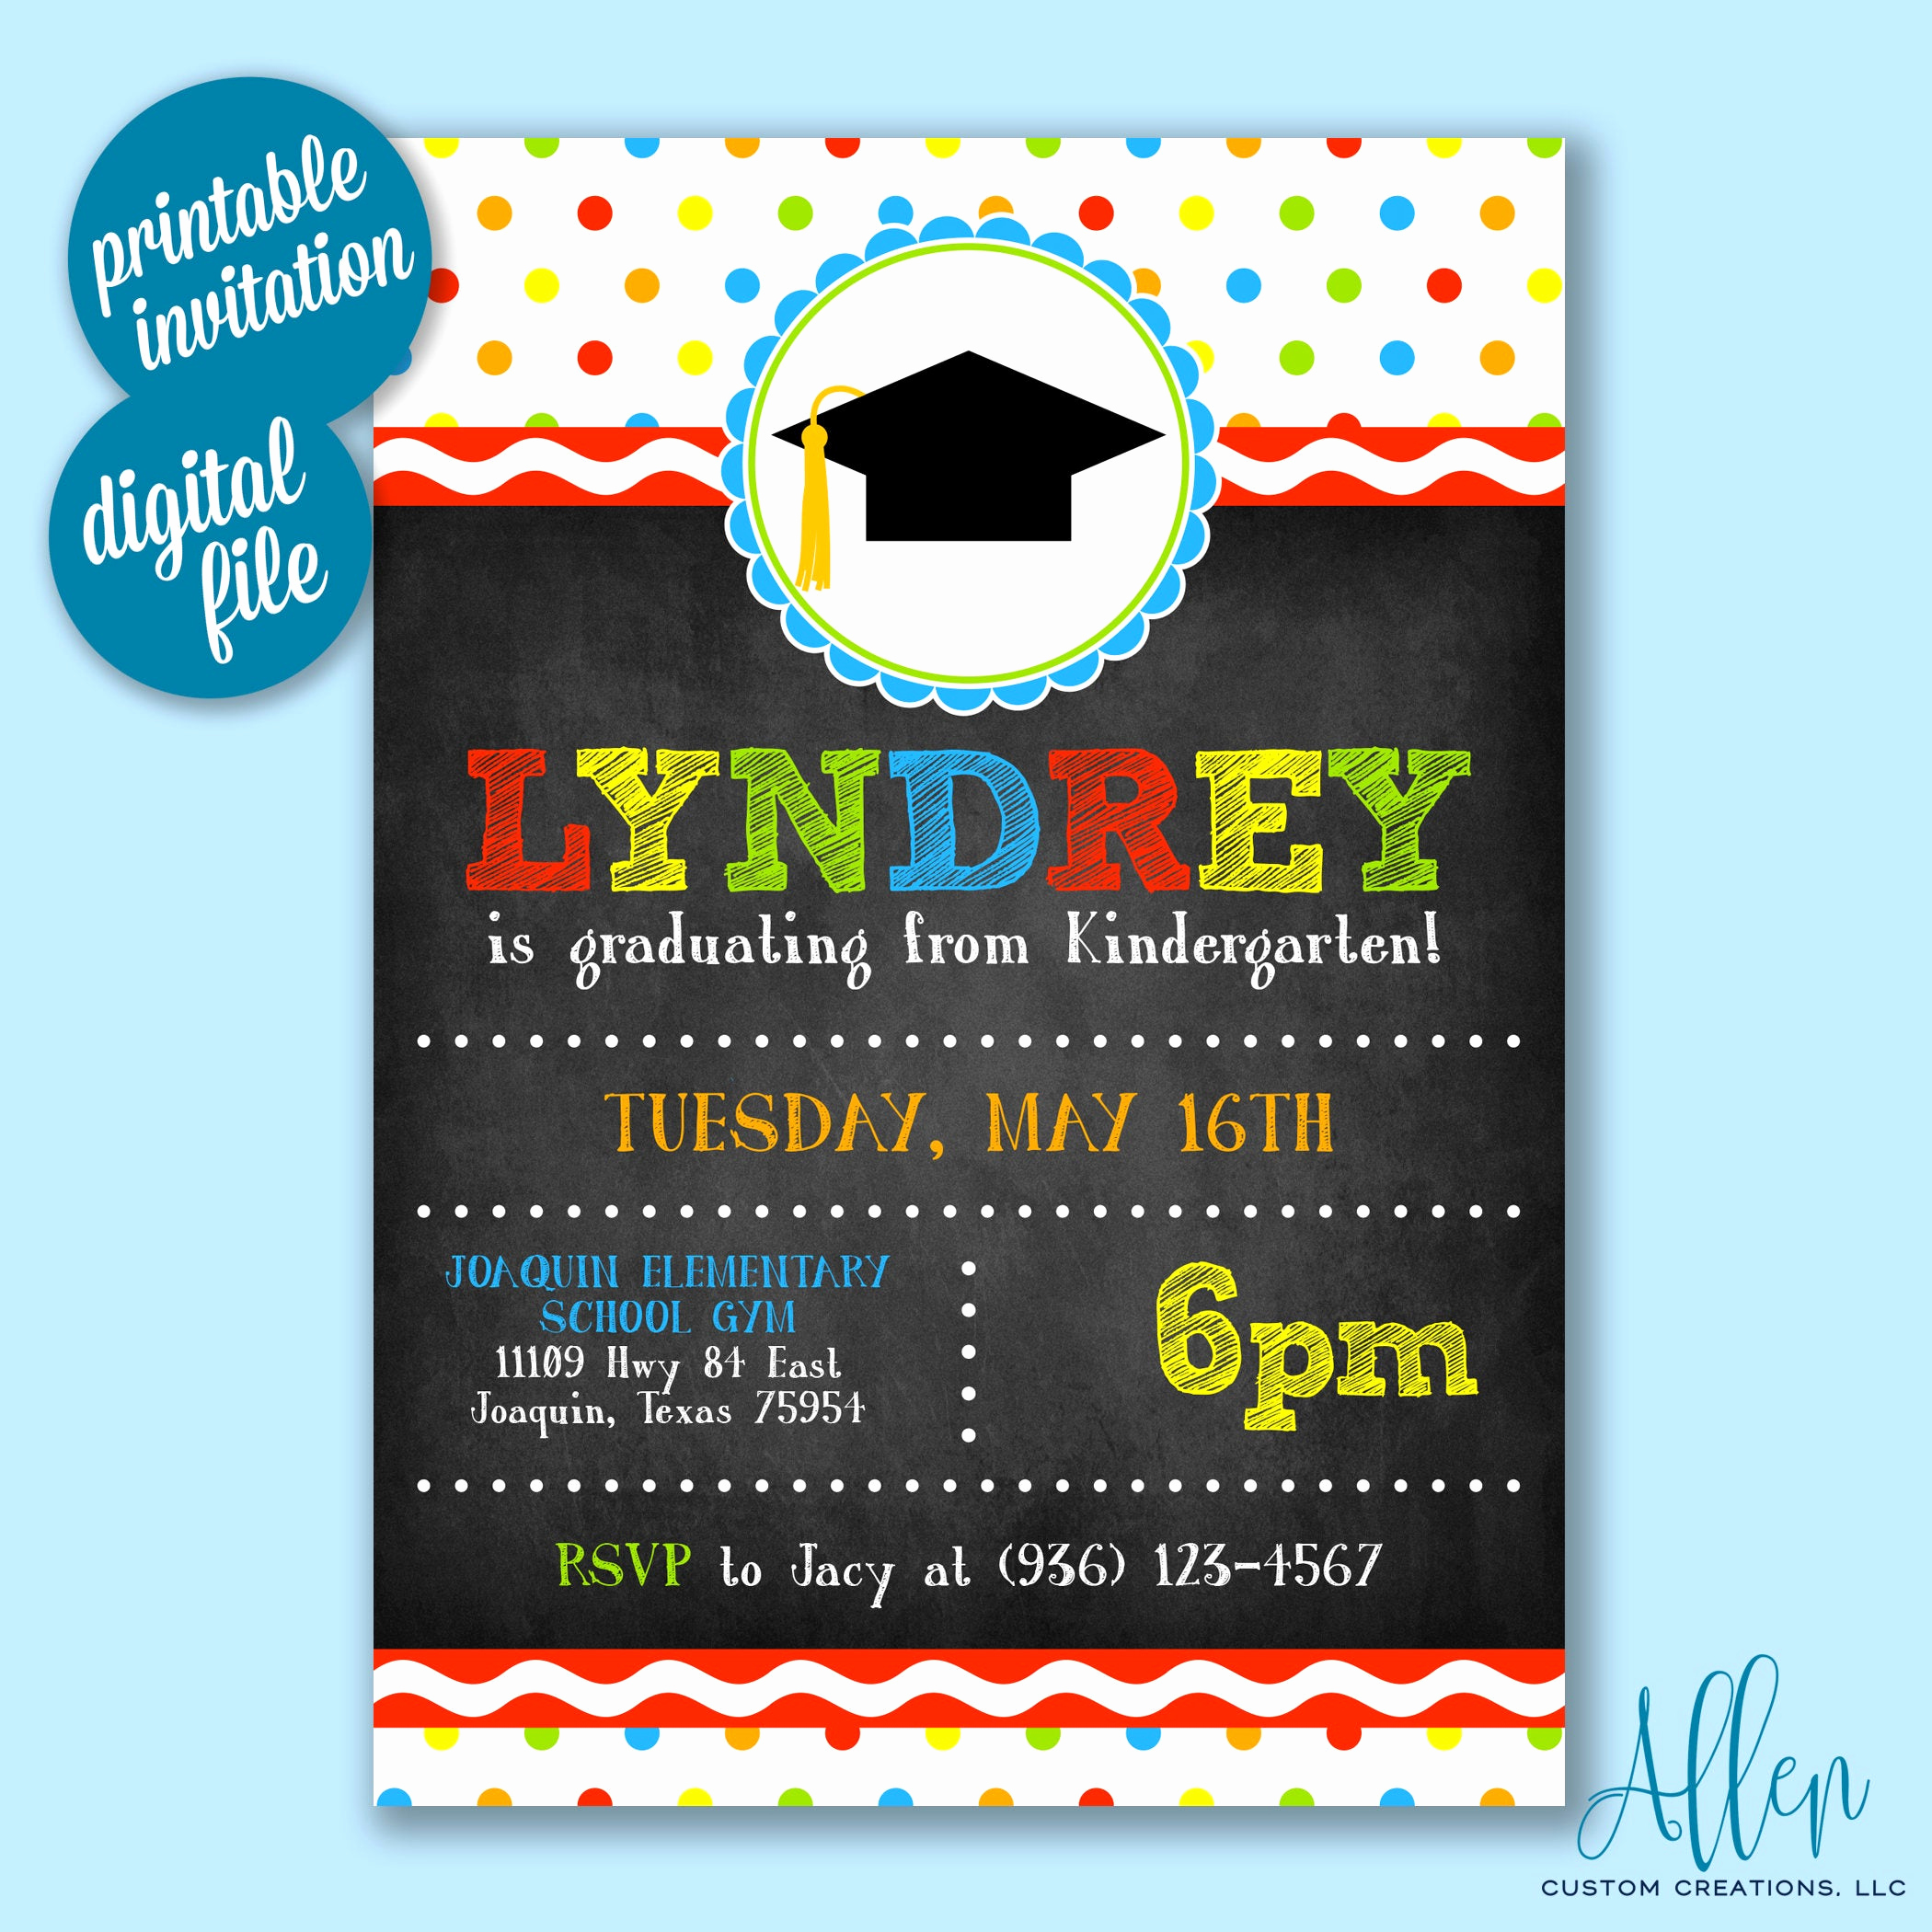 Pre School Graduation Invitation Unique Kindergarten Graduation Invitation